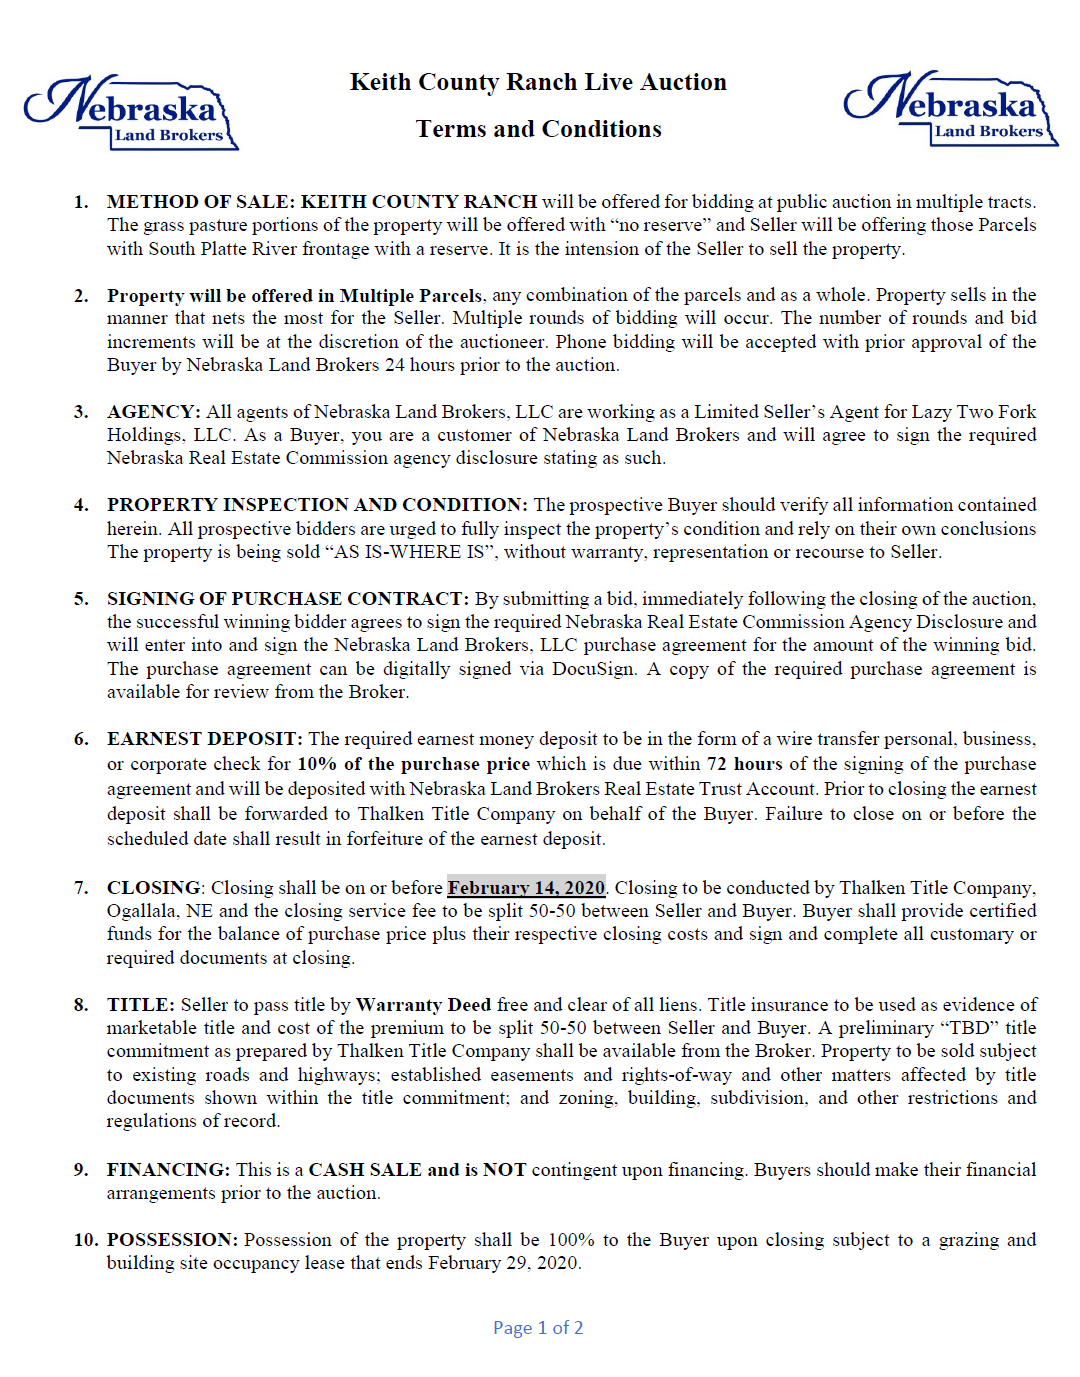 Auction Terms & Conditions Page 1.png